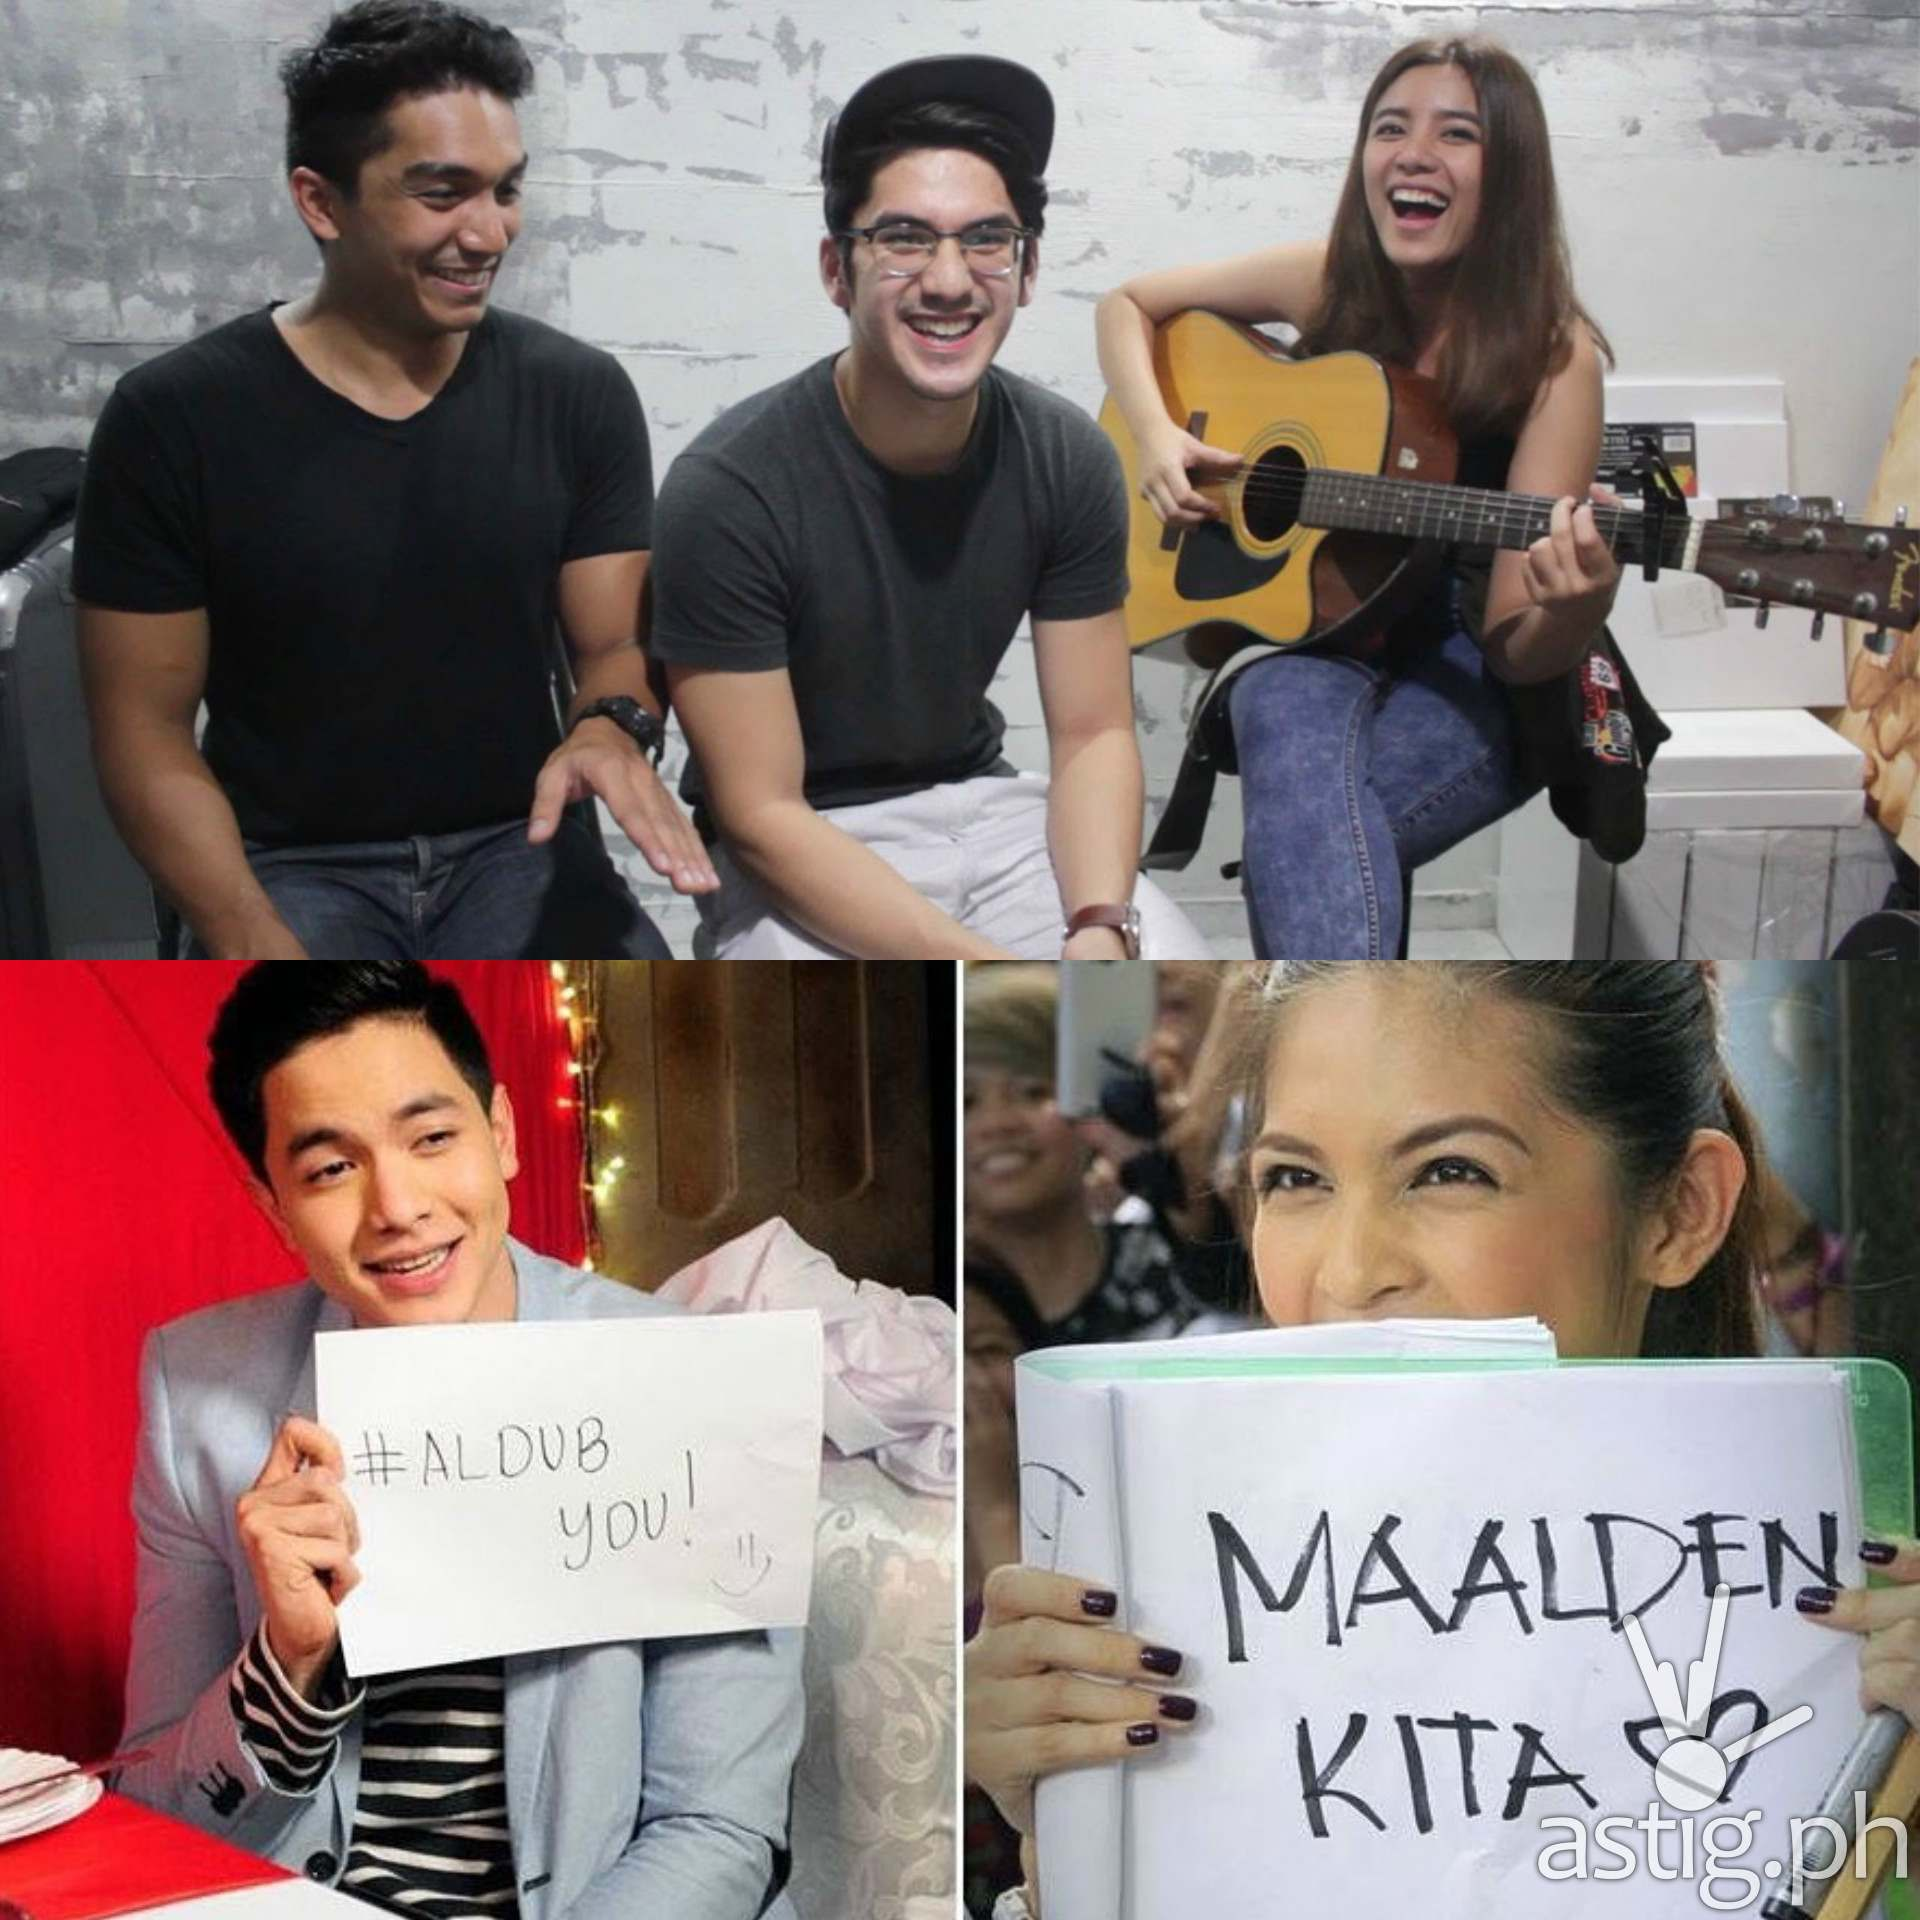 Aldub Song by Keiko Necesario, Isaiah Antonio, and Andrai Antonio